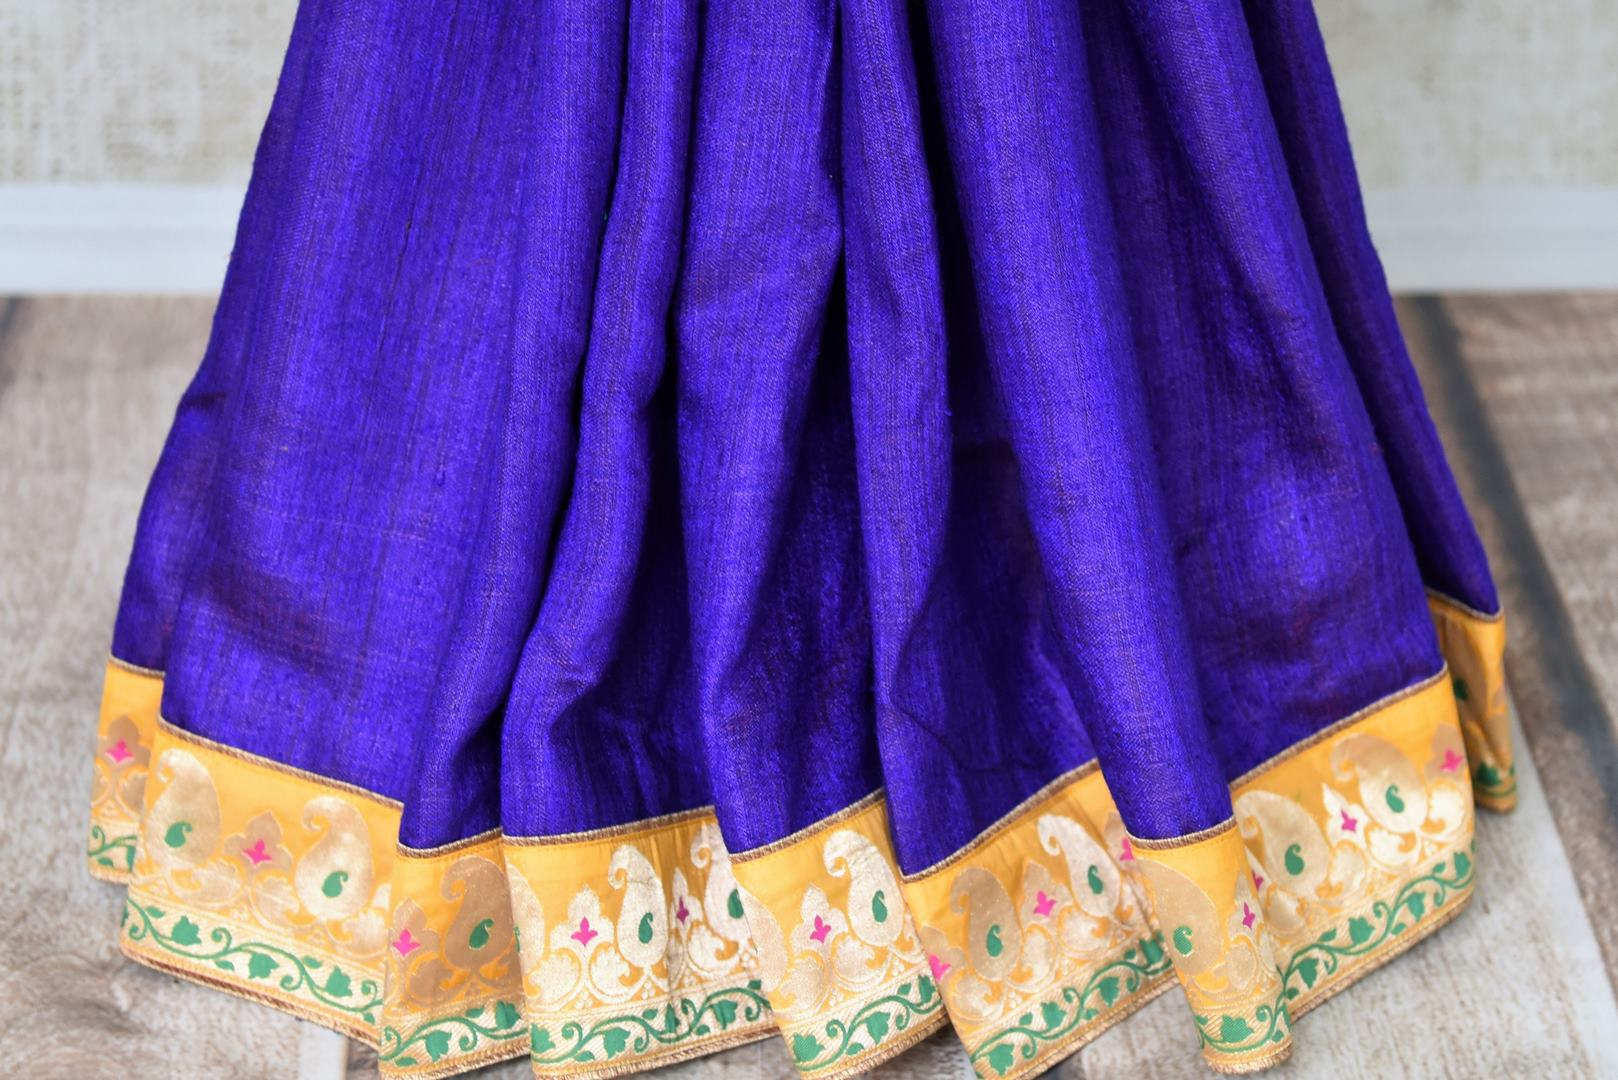 Buy blue and green Pashmina saree online in USA with khaddi Banarasi border from Pure Elegance online store. Visit our exclusive Indian clothing store in USA and get floored by a range of exquisite Indian Kanjivaram saris, Banarasi sarees, silk sarees, Indian jewelry and much more to complete your ethnic look.-pleats